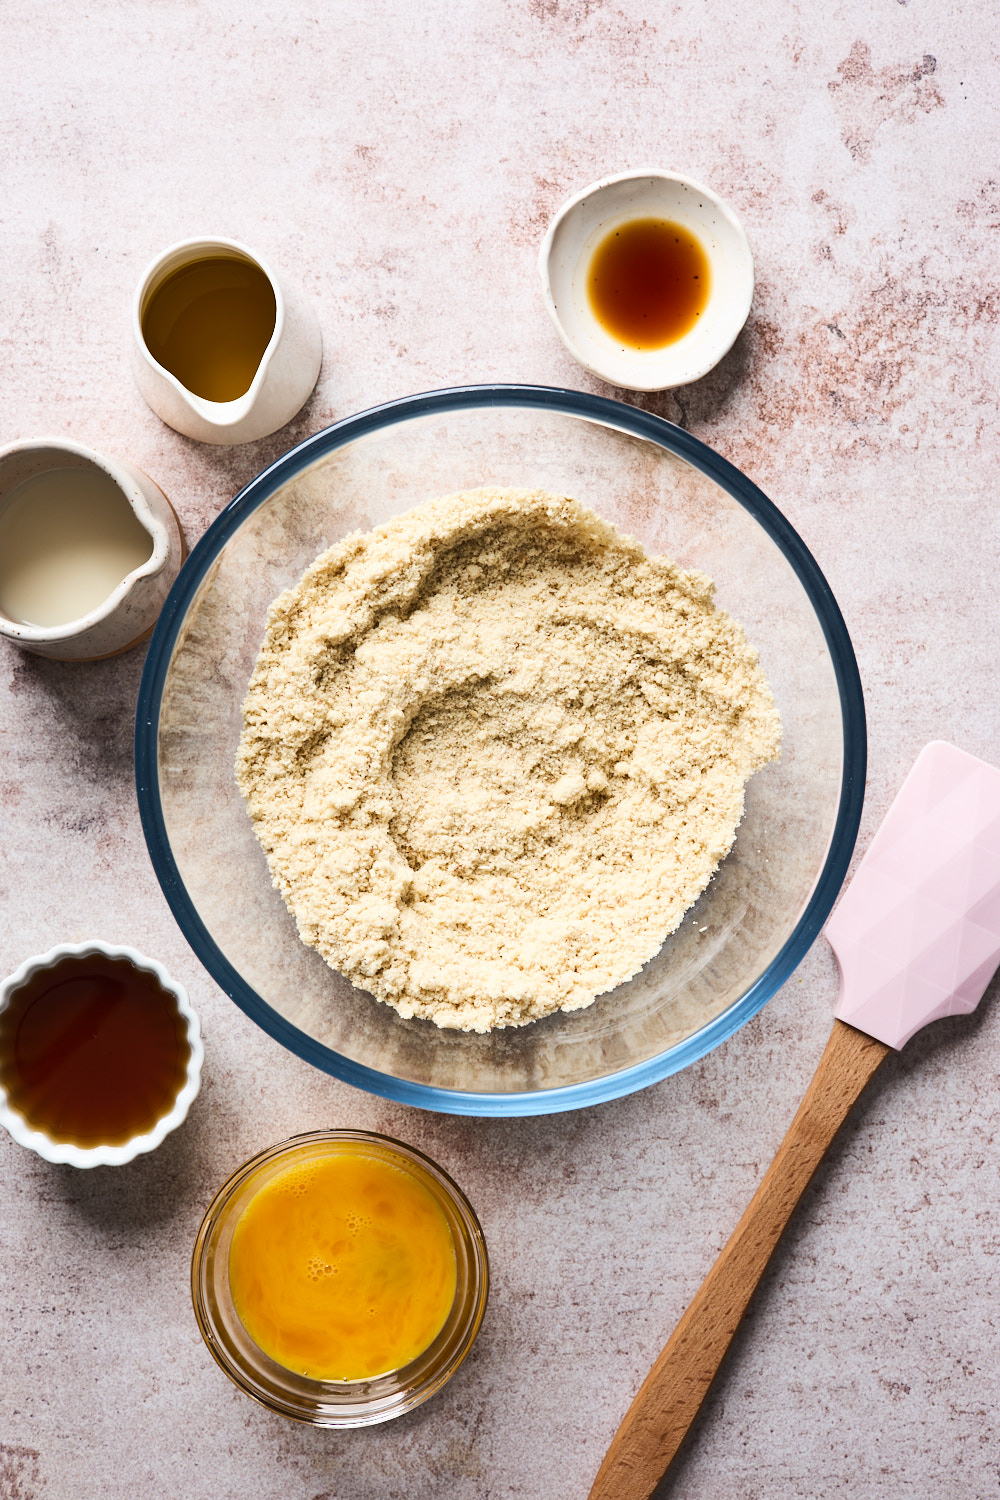 Ingredients for Almond Flour Muffins in a bowl